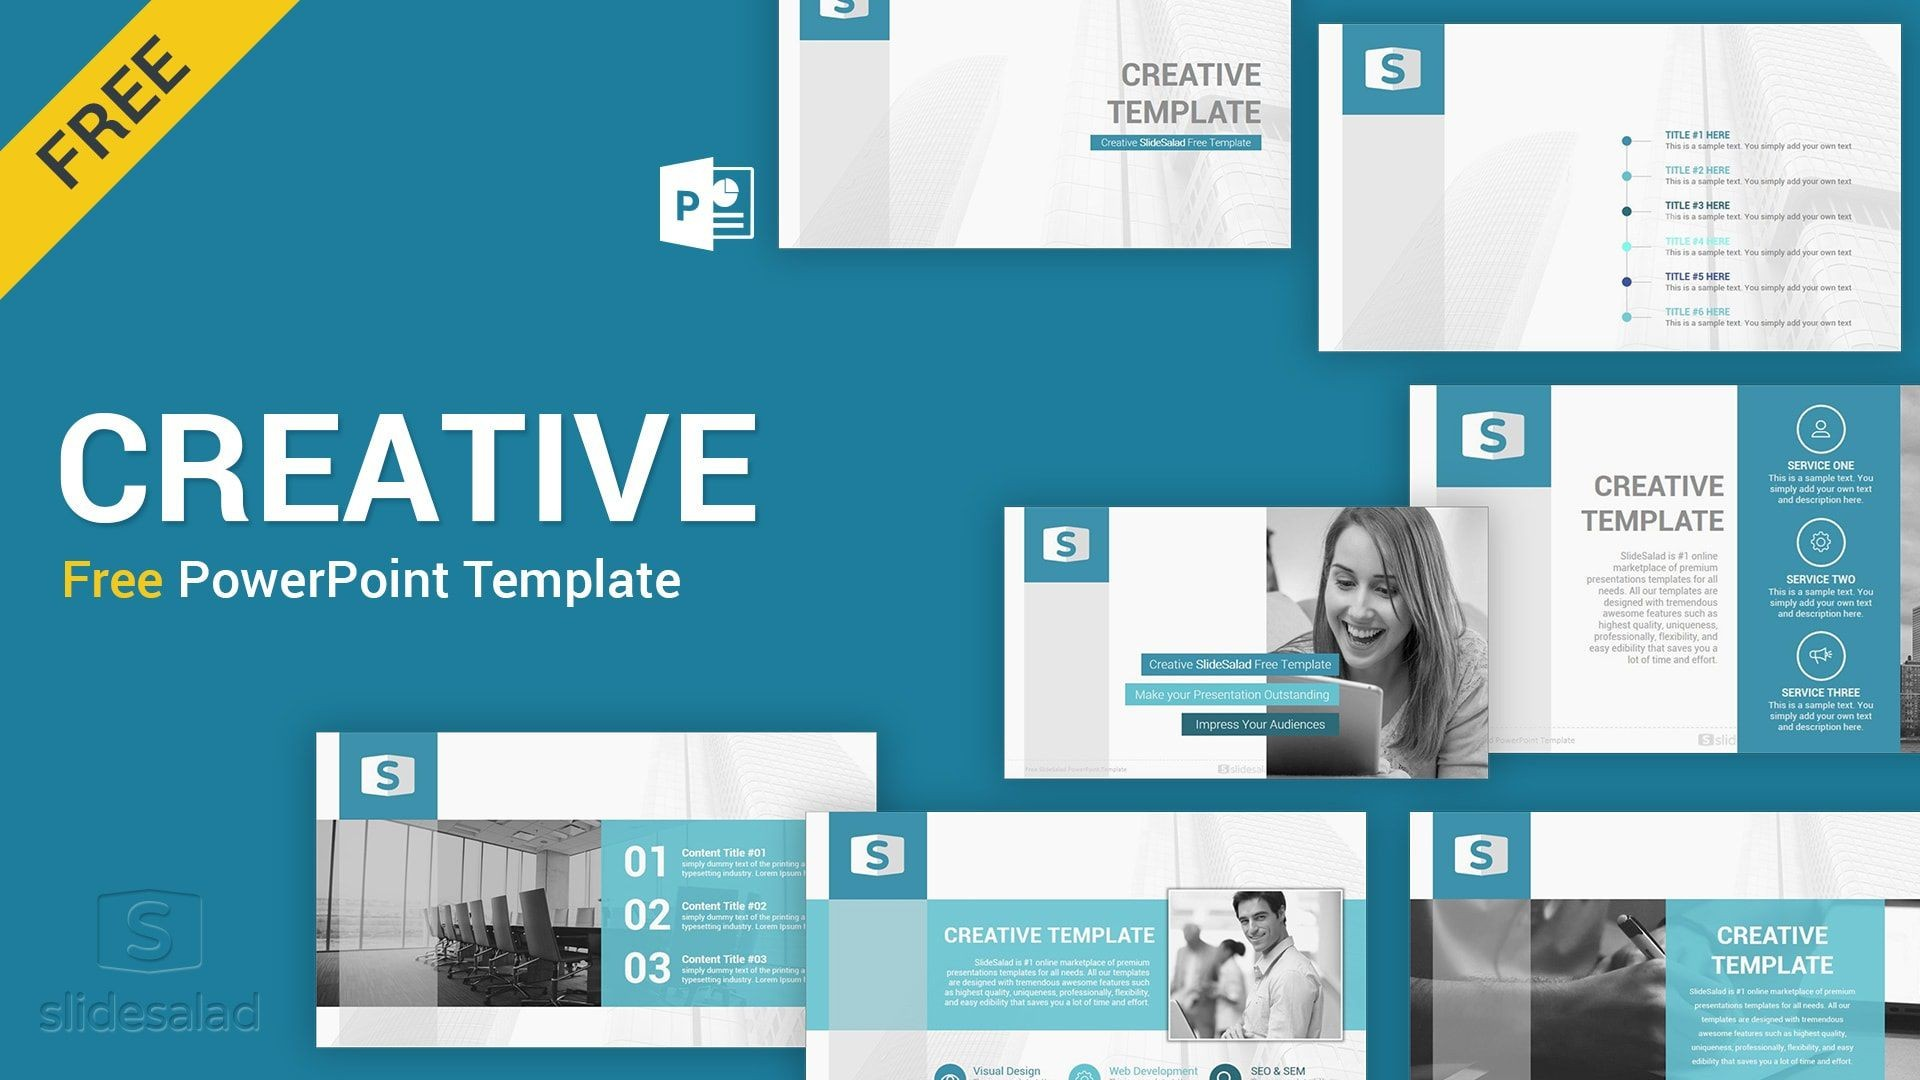 005 Formidable Free Downloadable Ppt Template Highest Quality  Templates For College Project Presentation Download Animated Medical1920